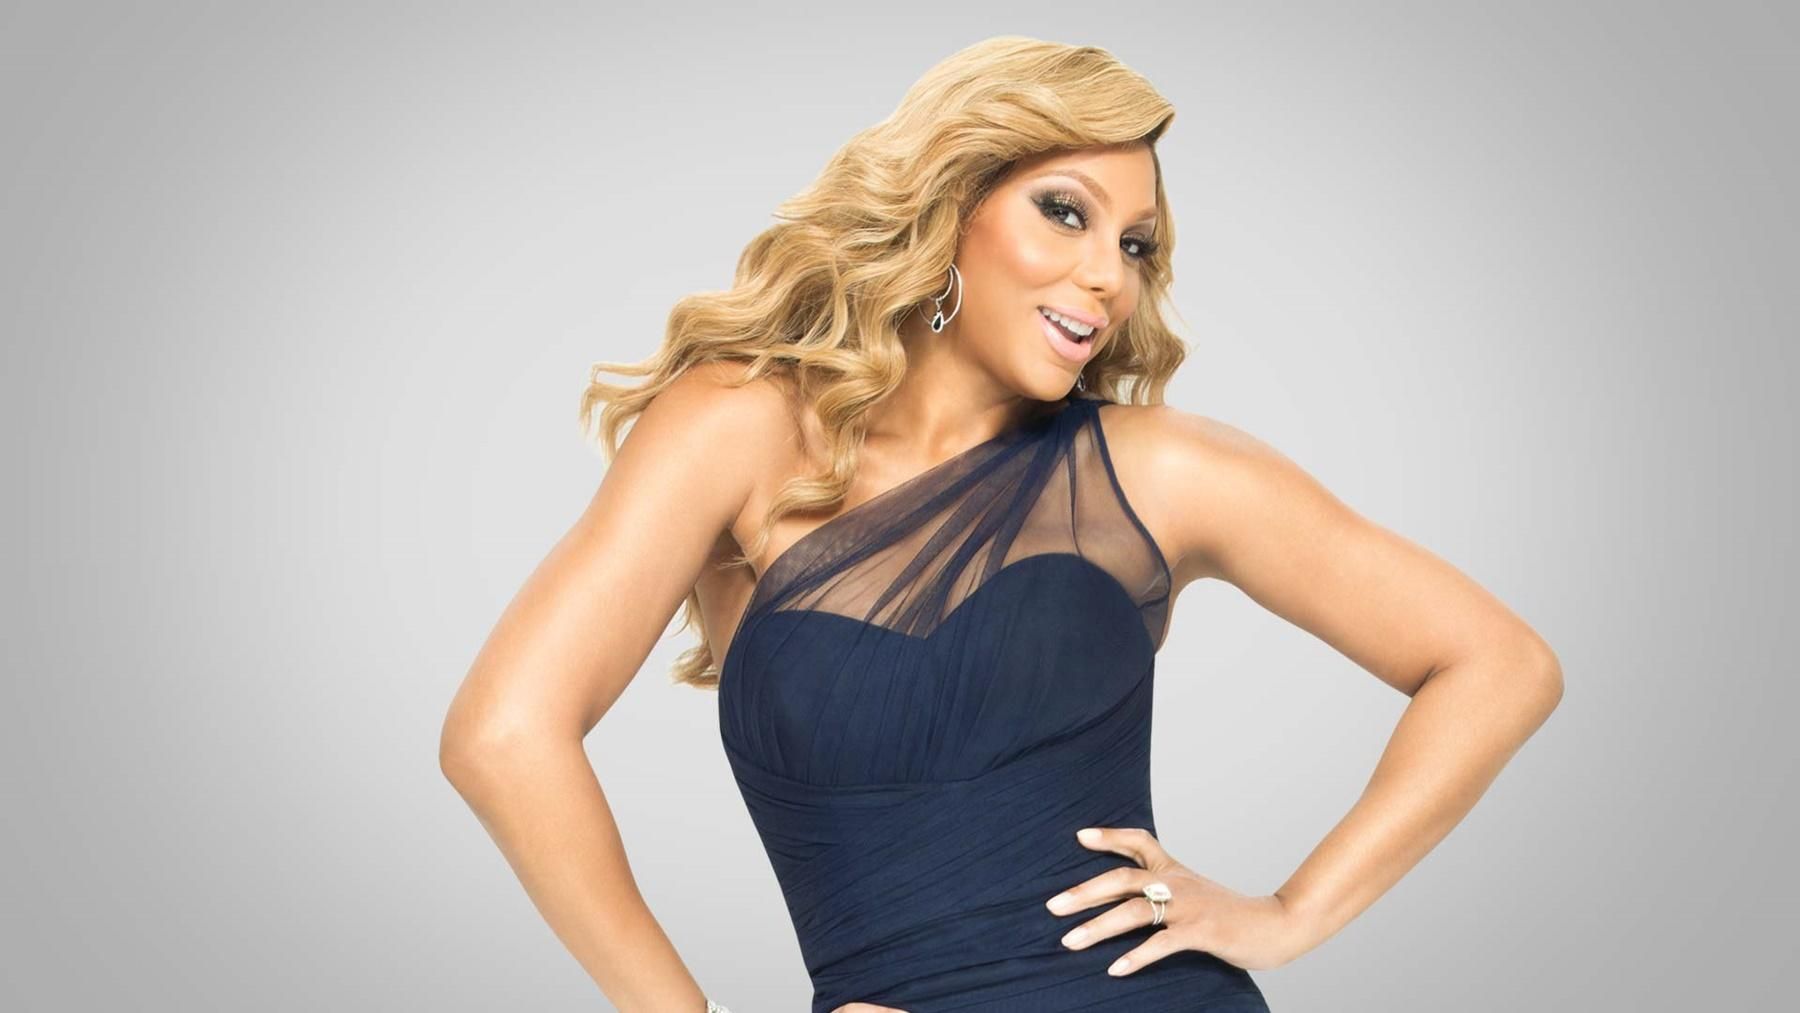 Tamar Braxton Redoes Her Birthday: 'You Have The Power To Turn The Energy Anyway You Want' - Watch Her Video